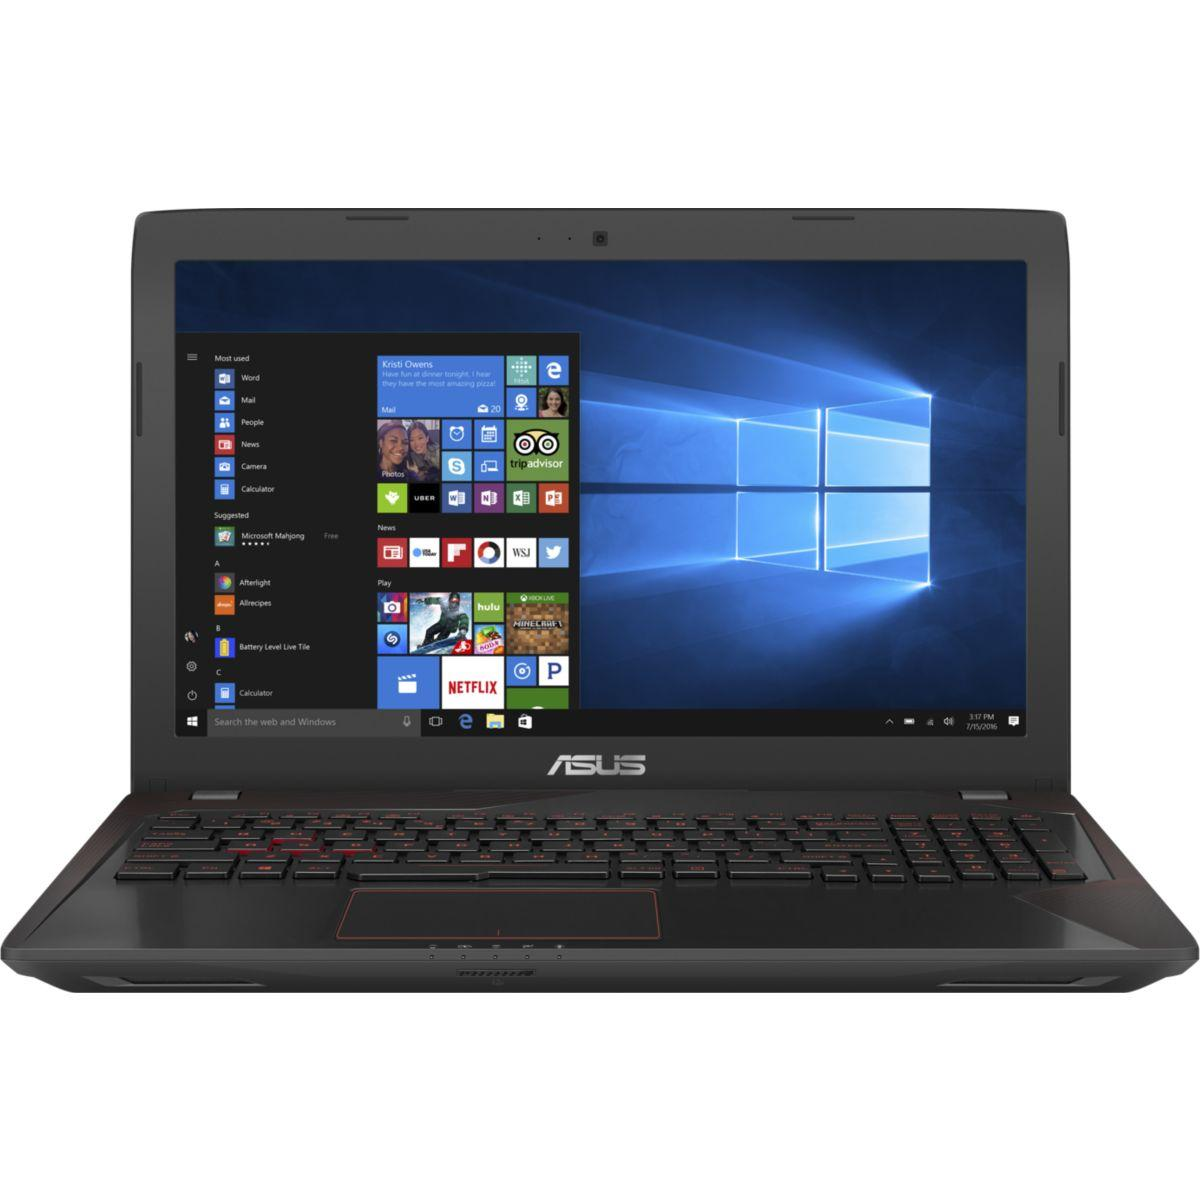 Portable asus fx553vd-dm339t (photo)